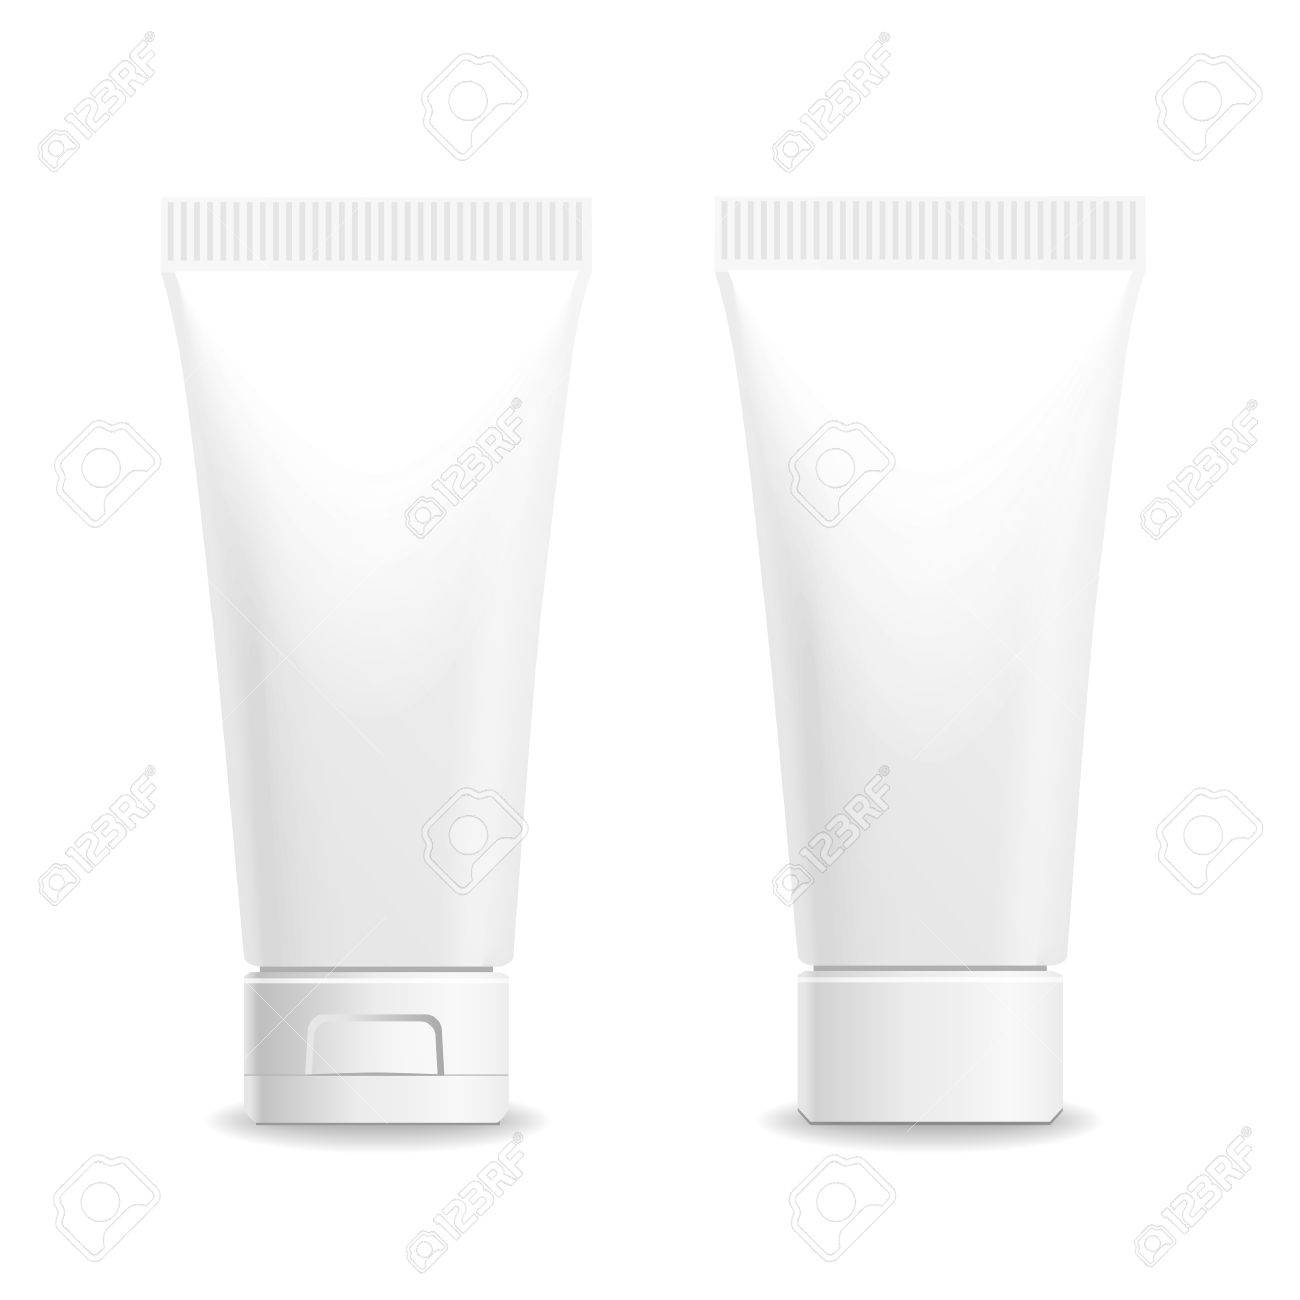 Make up. Tube of cream or gel white plastic product. Container, product and packaging. White background. - 46085015